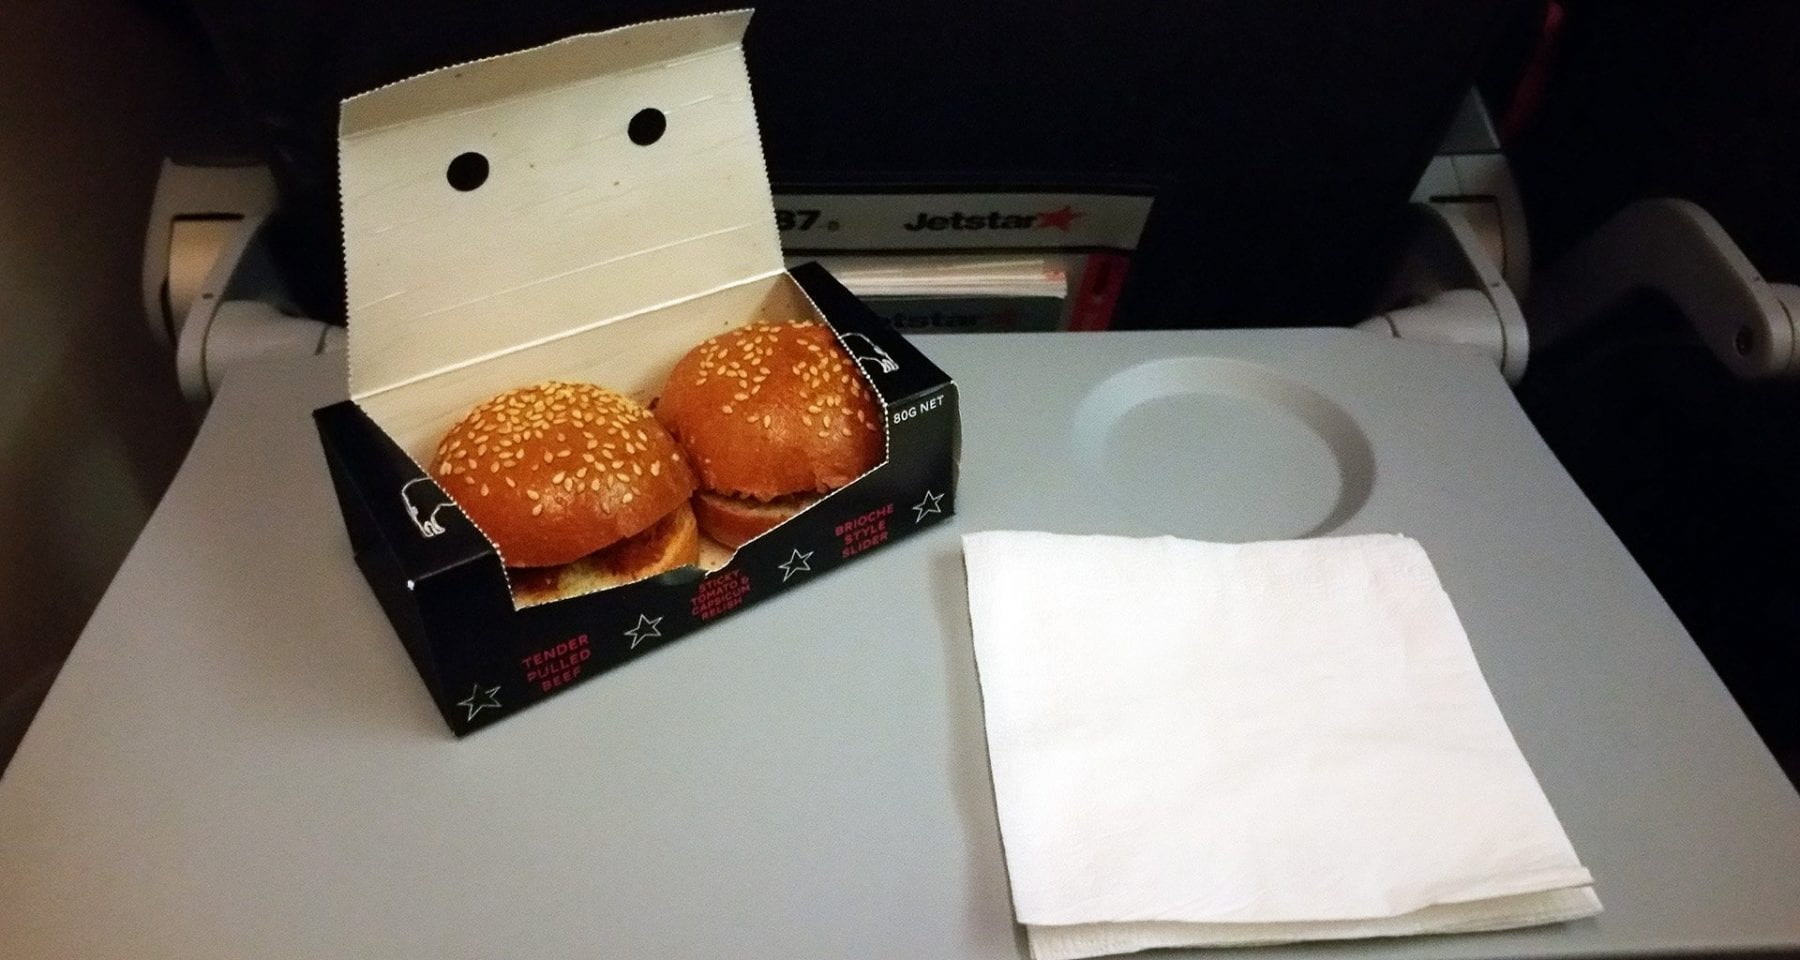 Jetstar economy class pre order meal burgers